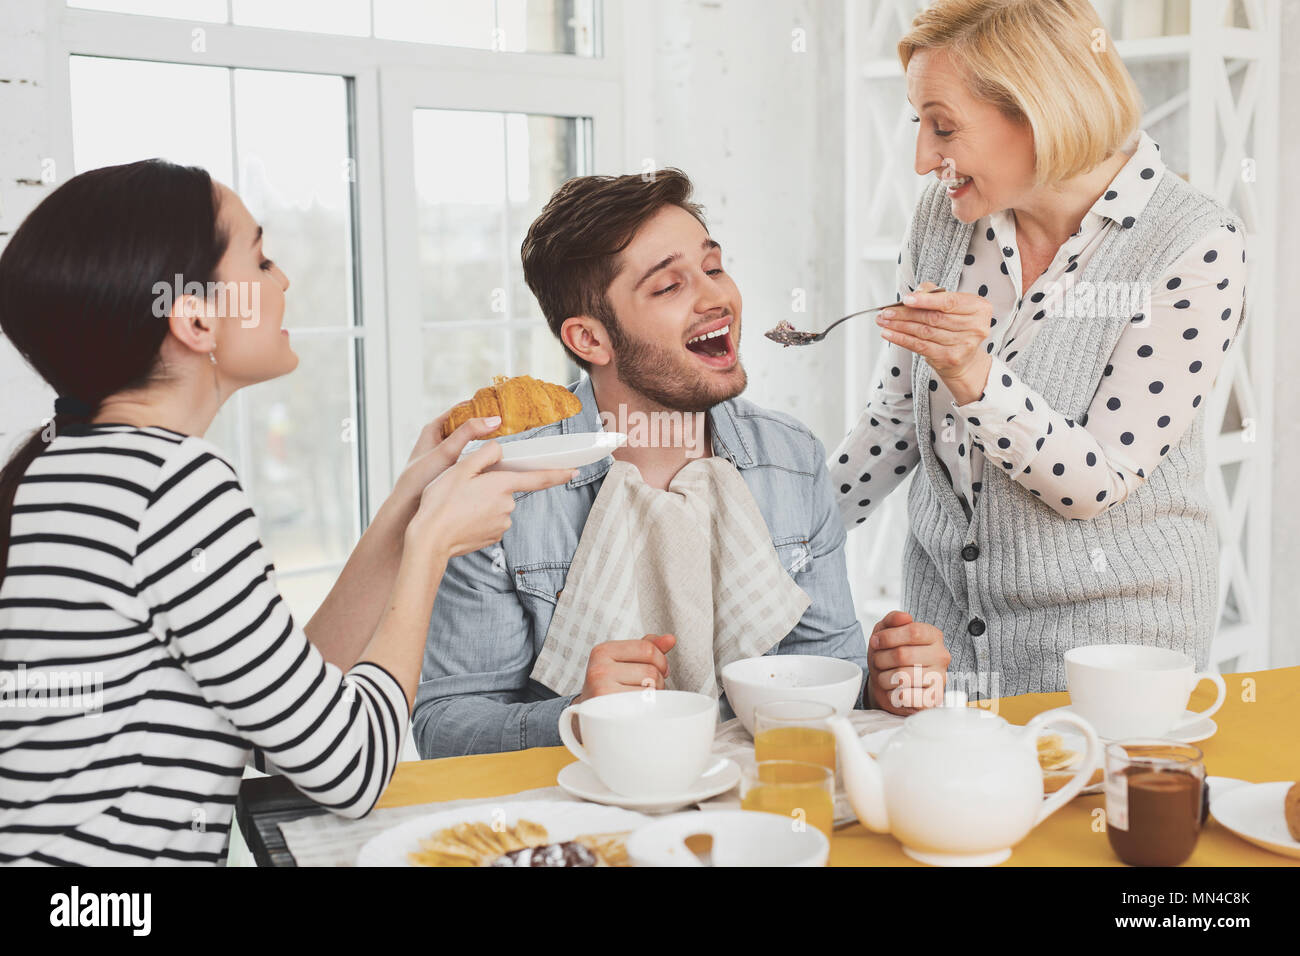 Happy young man opening his mouth - Stock Image